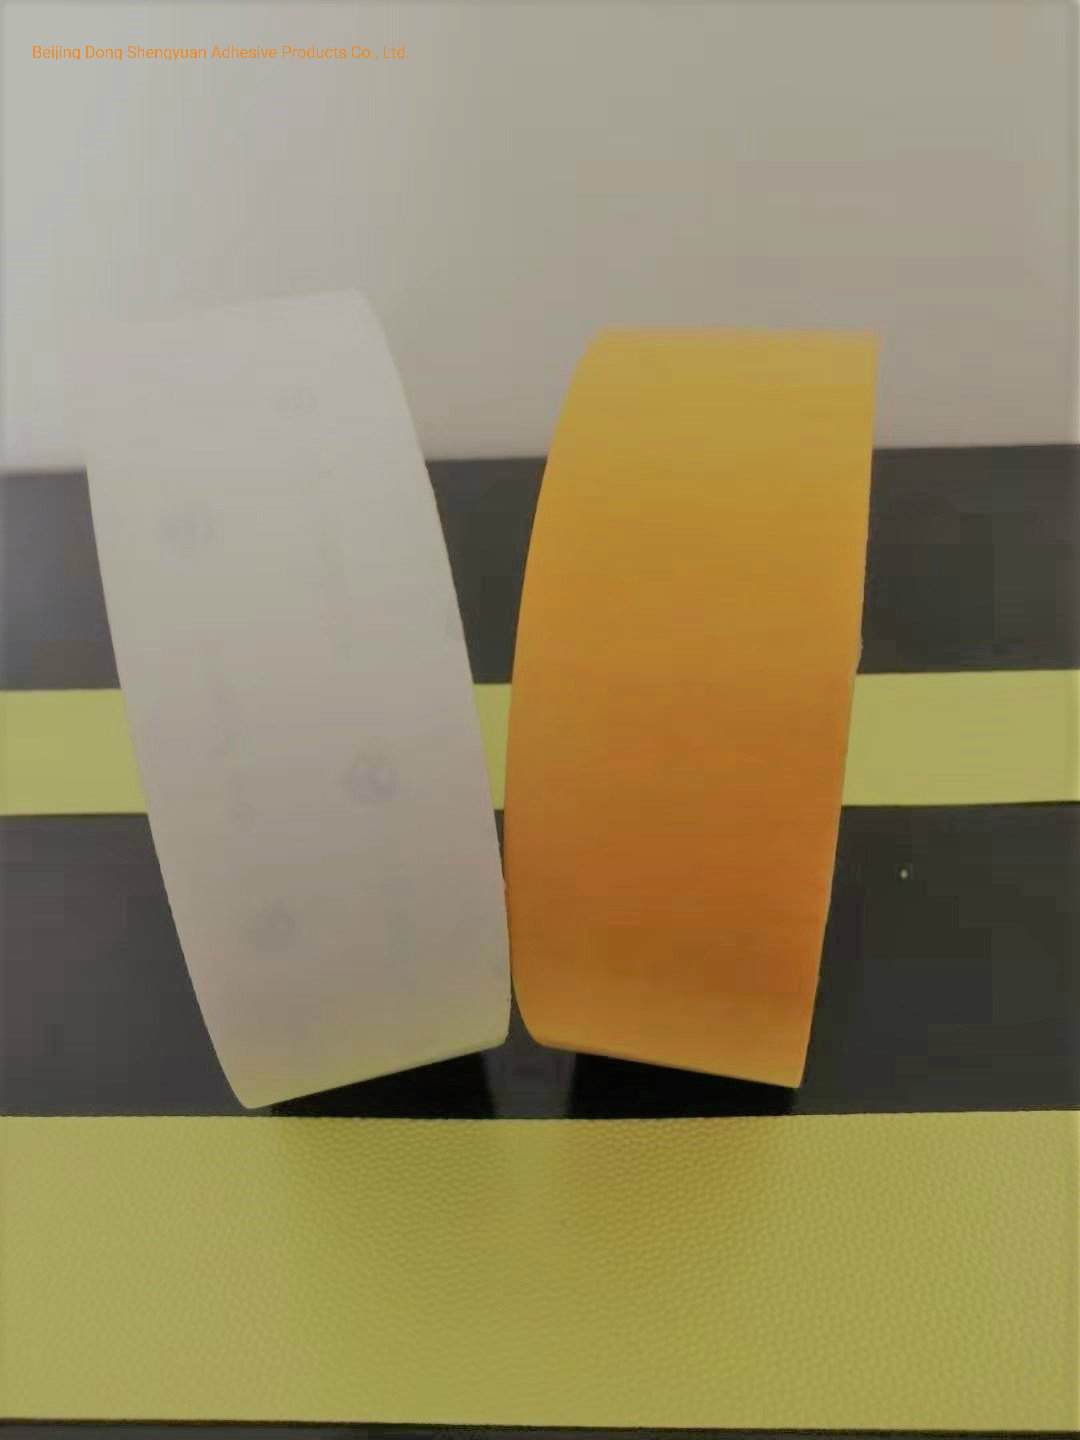 DSY-002 Double-sided cloth tape